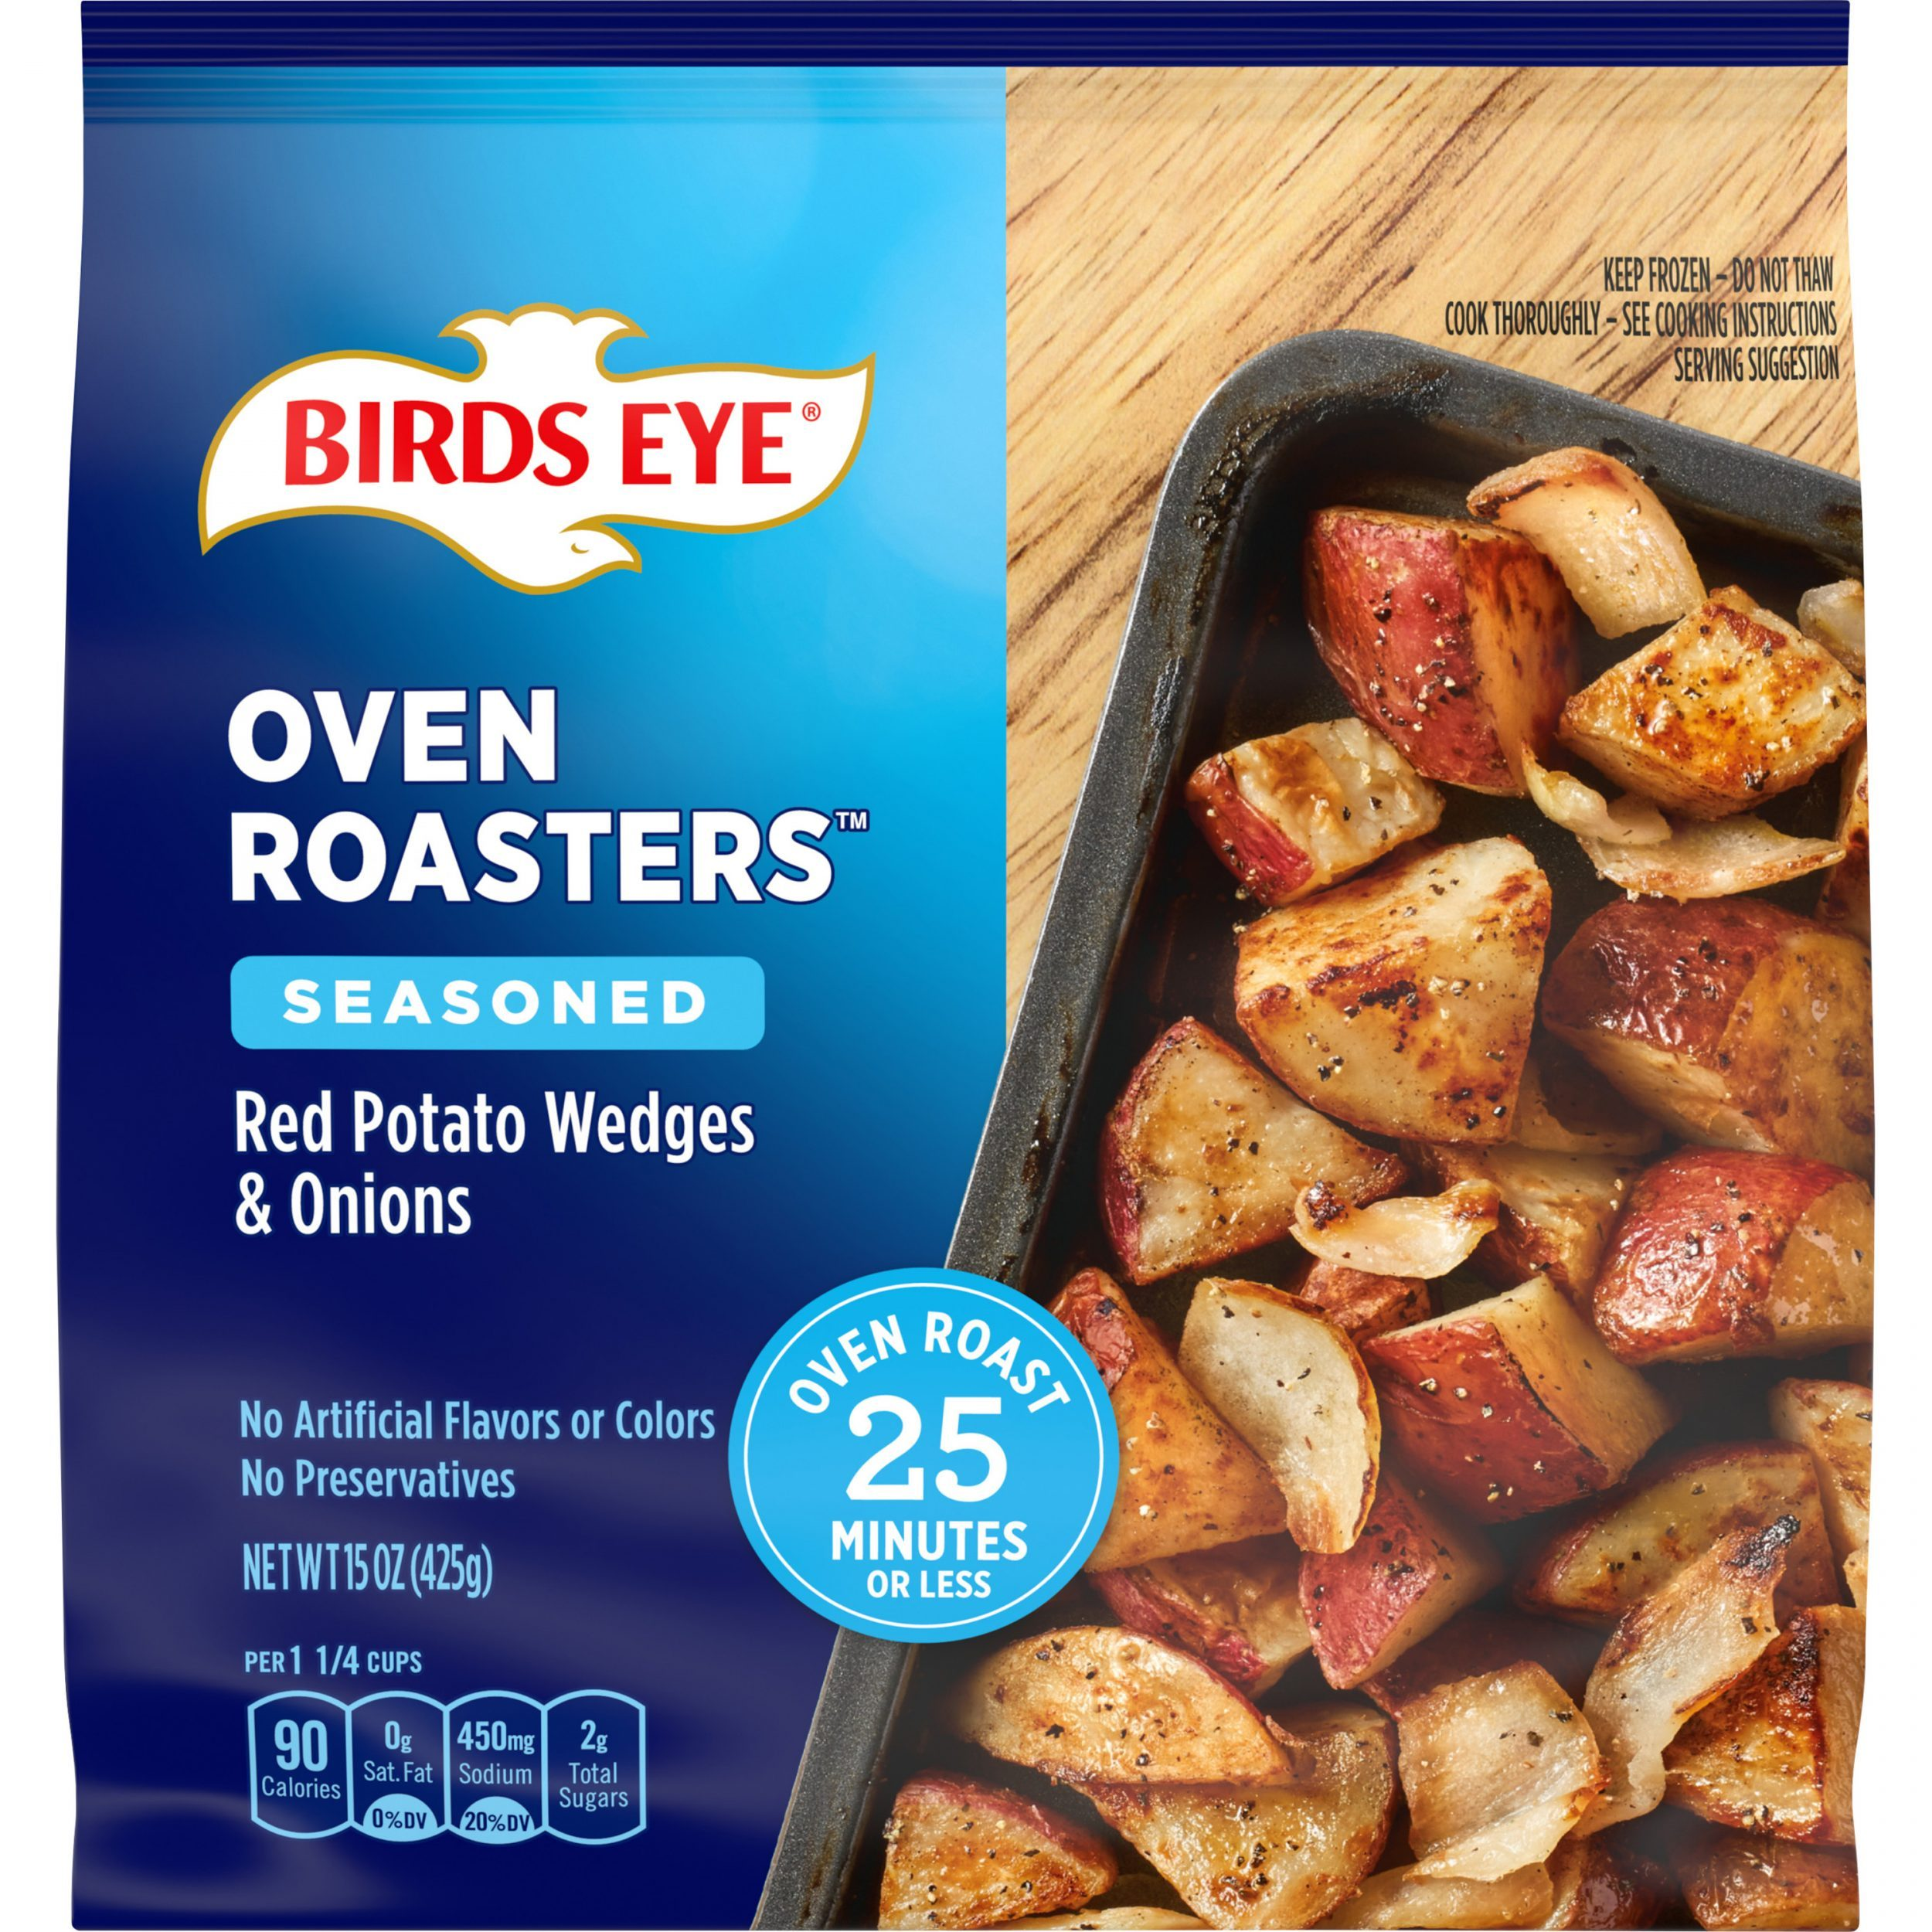 Birds Eye OvenRoasters™ Sheet Pan Vegetables Red Potatoes & Onions